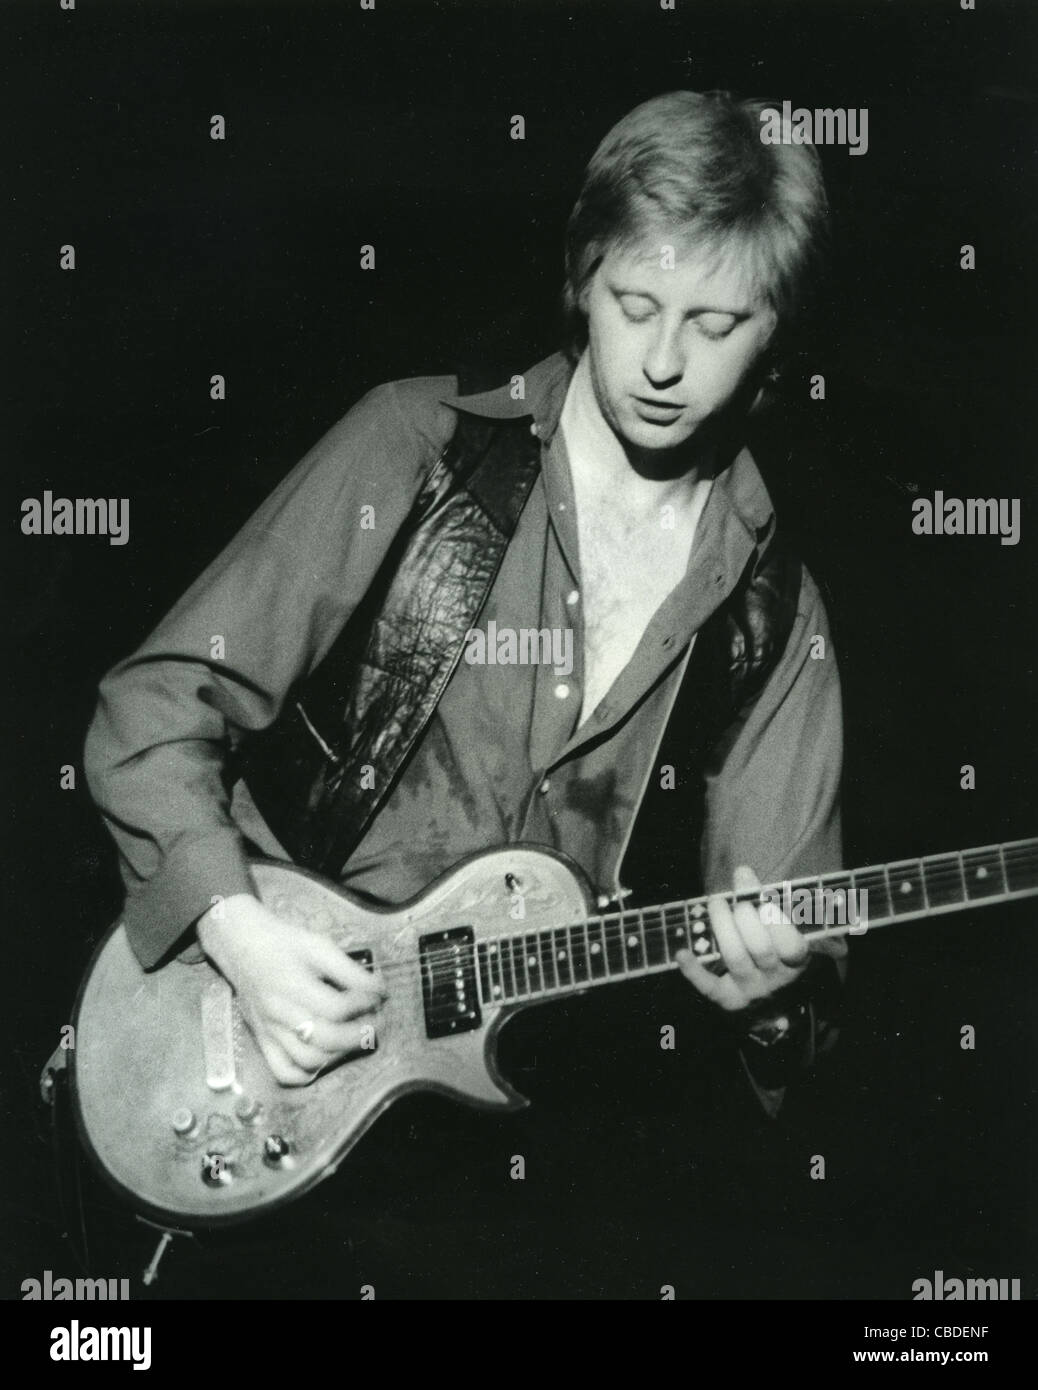 THE PRETENDERS - UK rock group with James Honeyman-Scott on lead guitar about 1982. Photo Paul Smith - Stock Image